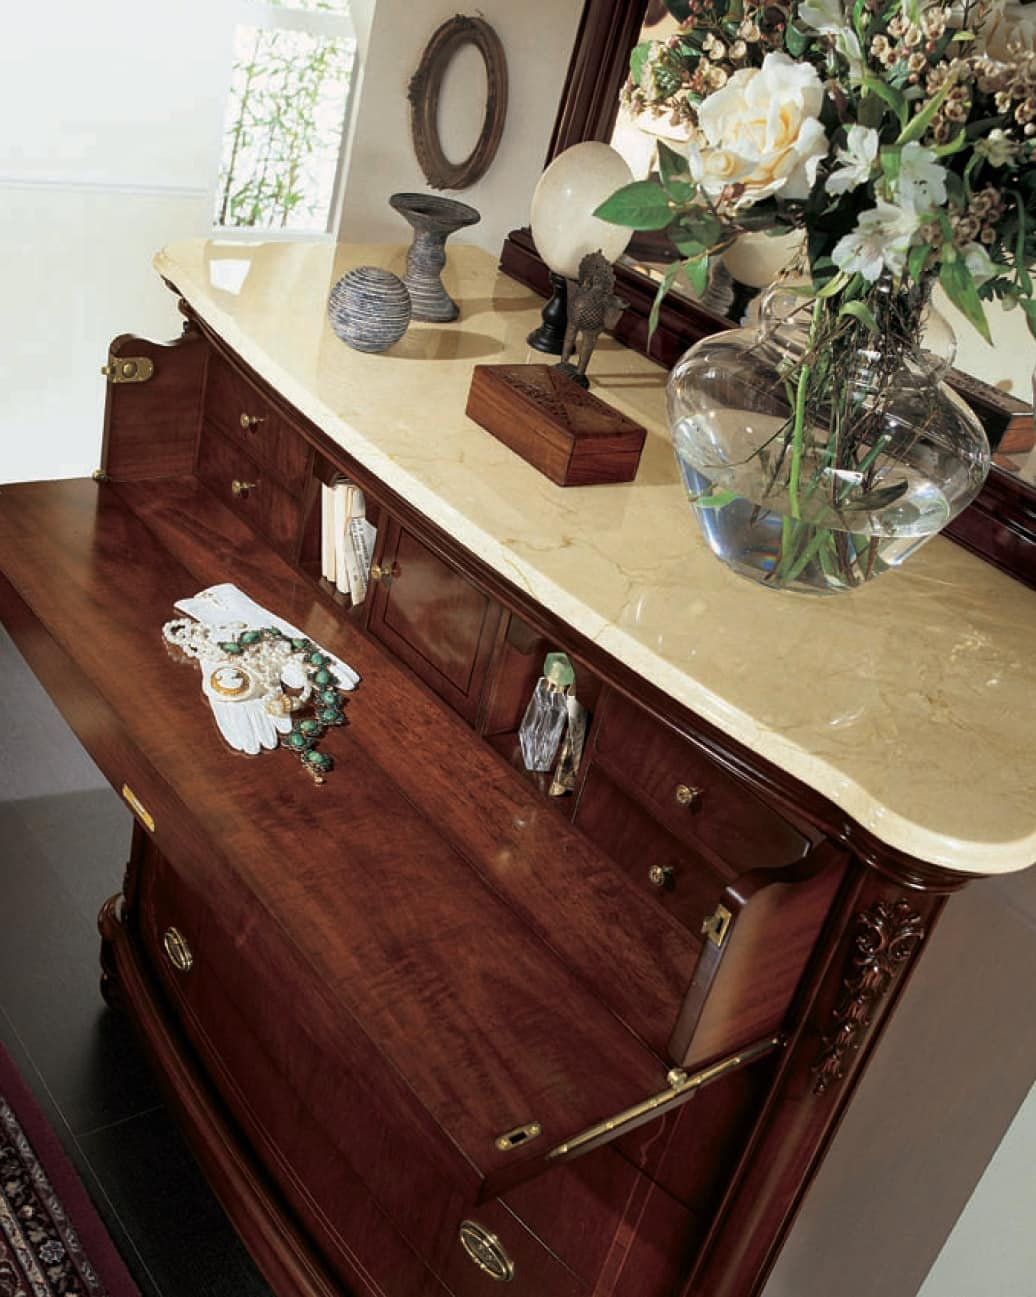 Gardenia flap, Chest of drawers with flap door and marble top, in walnut